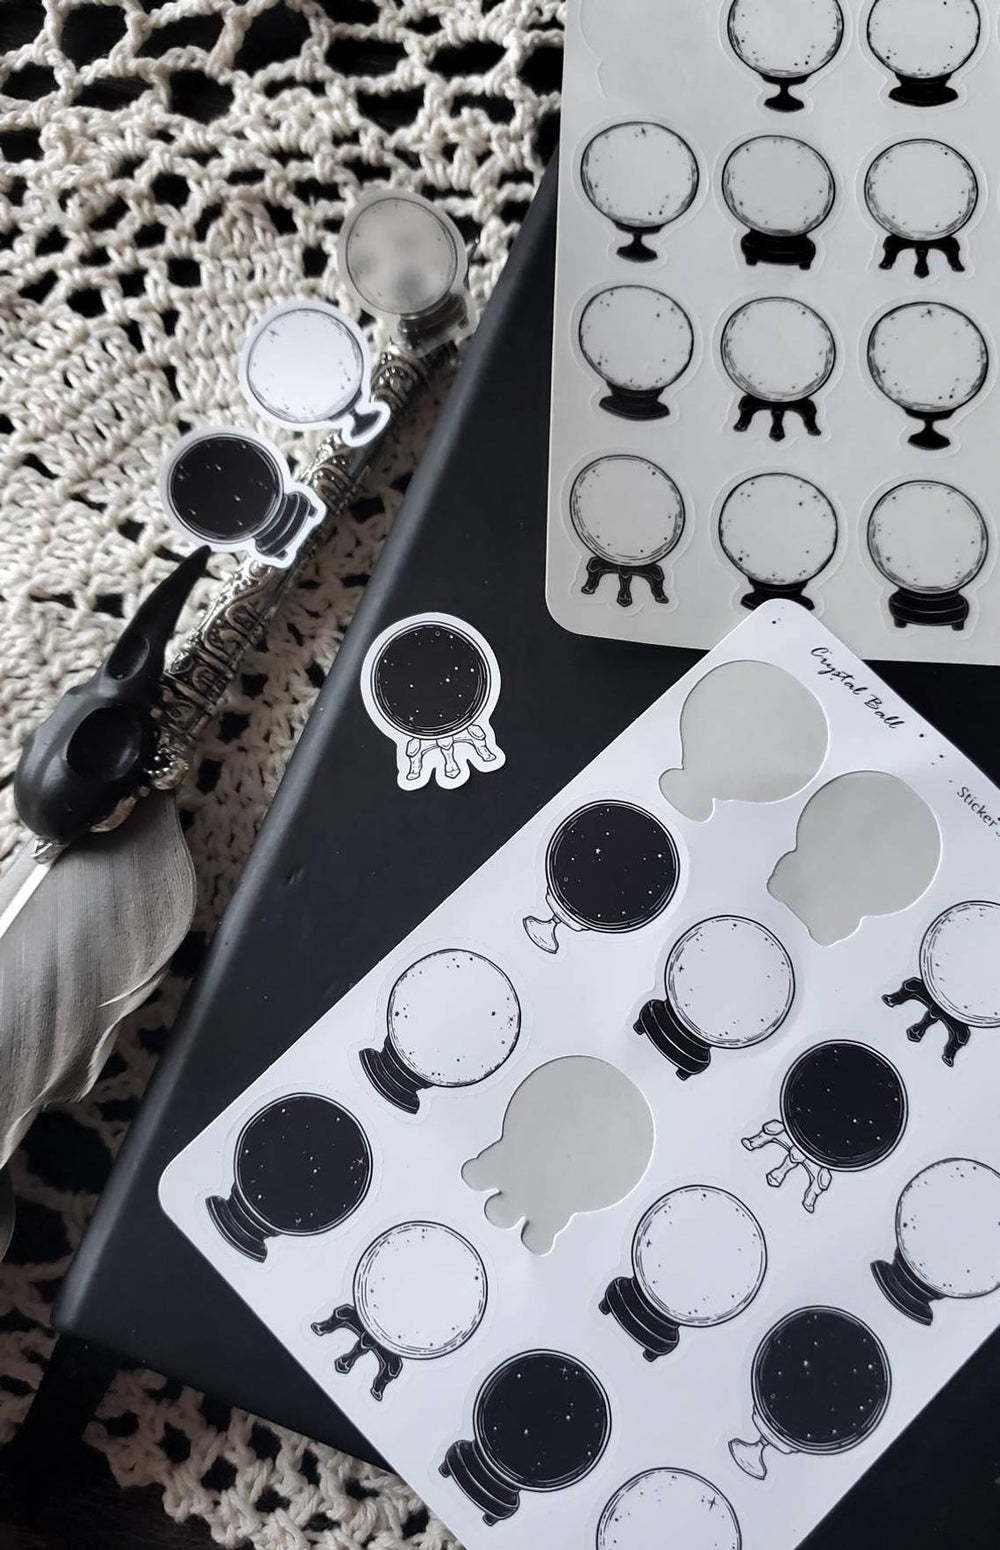 Crystal ball STICKER sheet set